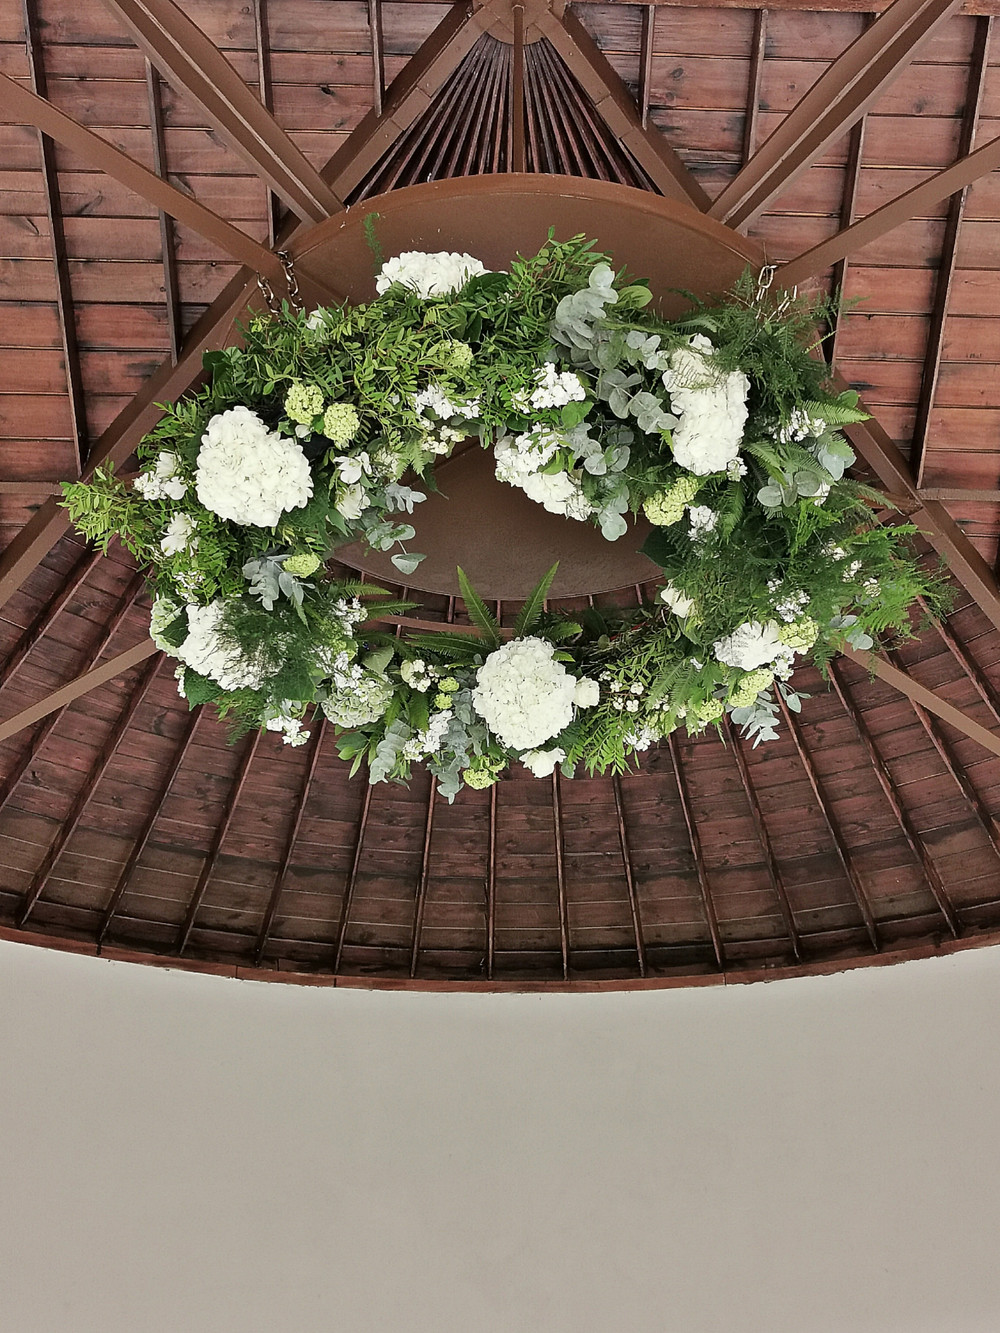 Stunning large hanging floral display in the ceiling of Newby Hall Orangery in Yorkshire, with classic white and green wedding flowers